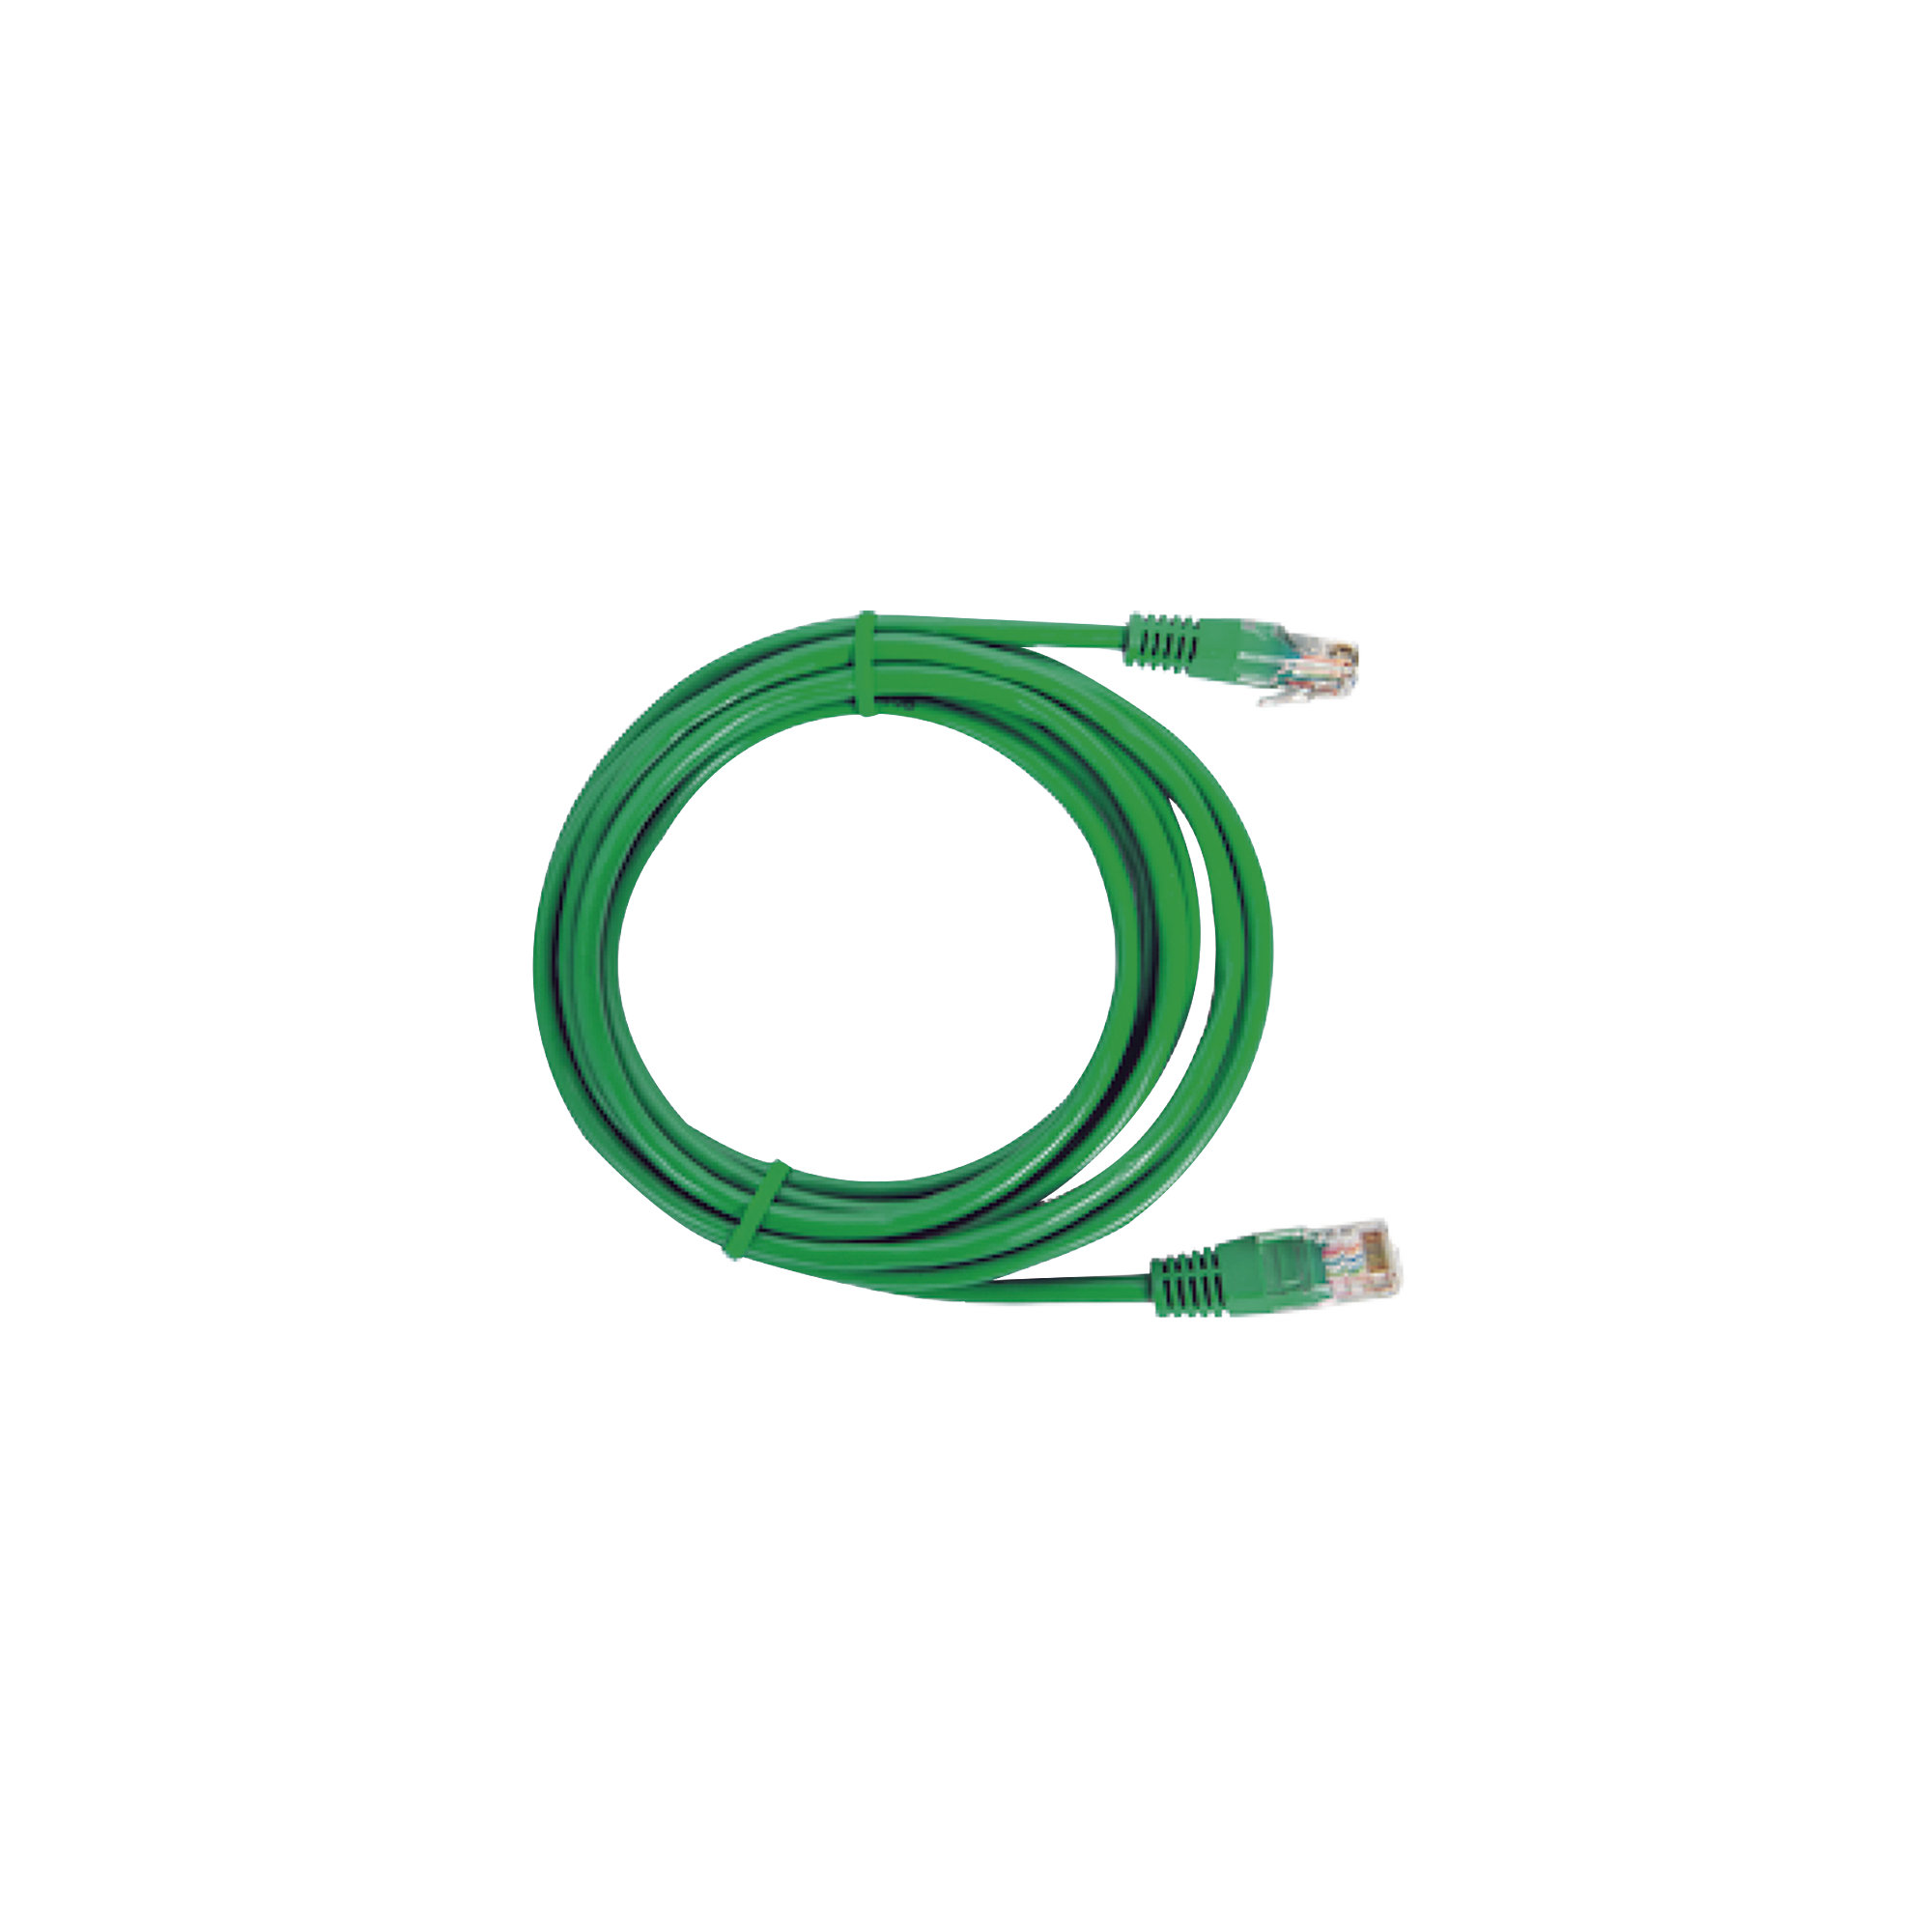 Cable de parcheo UTP Cat6 - 2 m (6.56 Pies) - verde